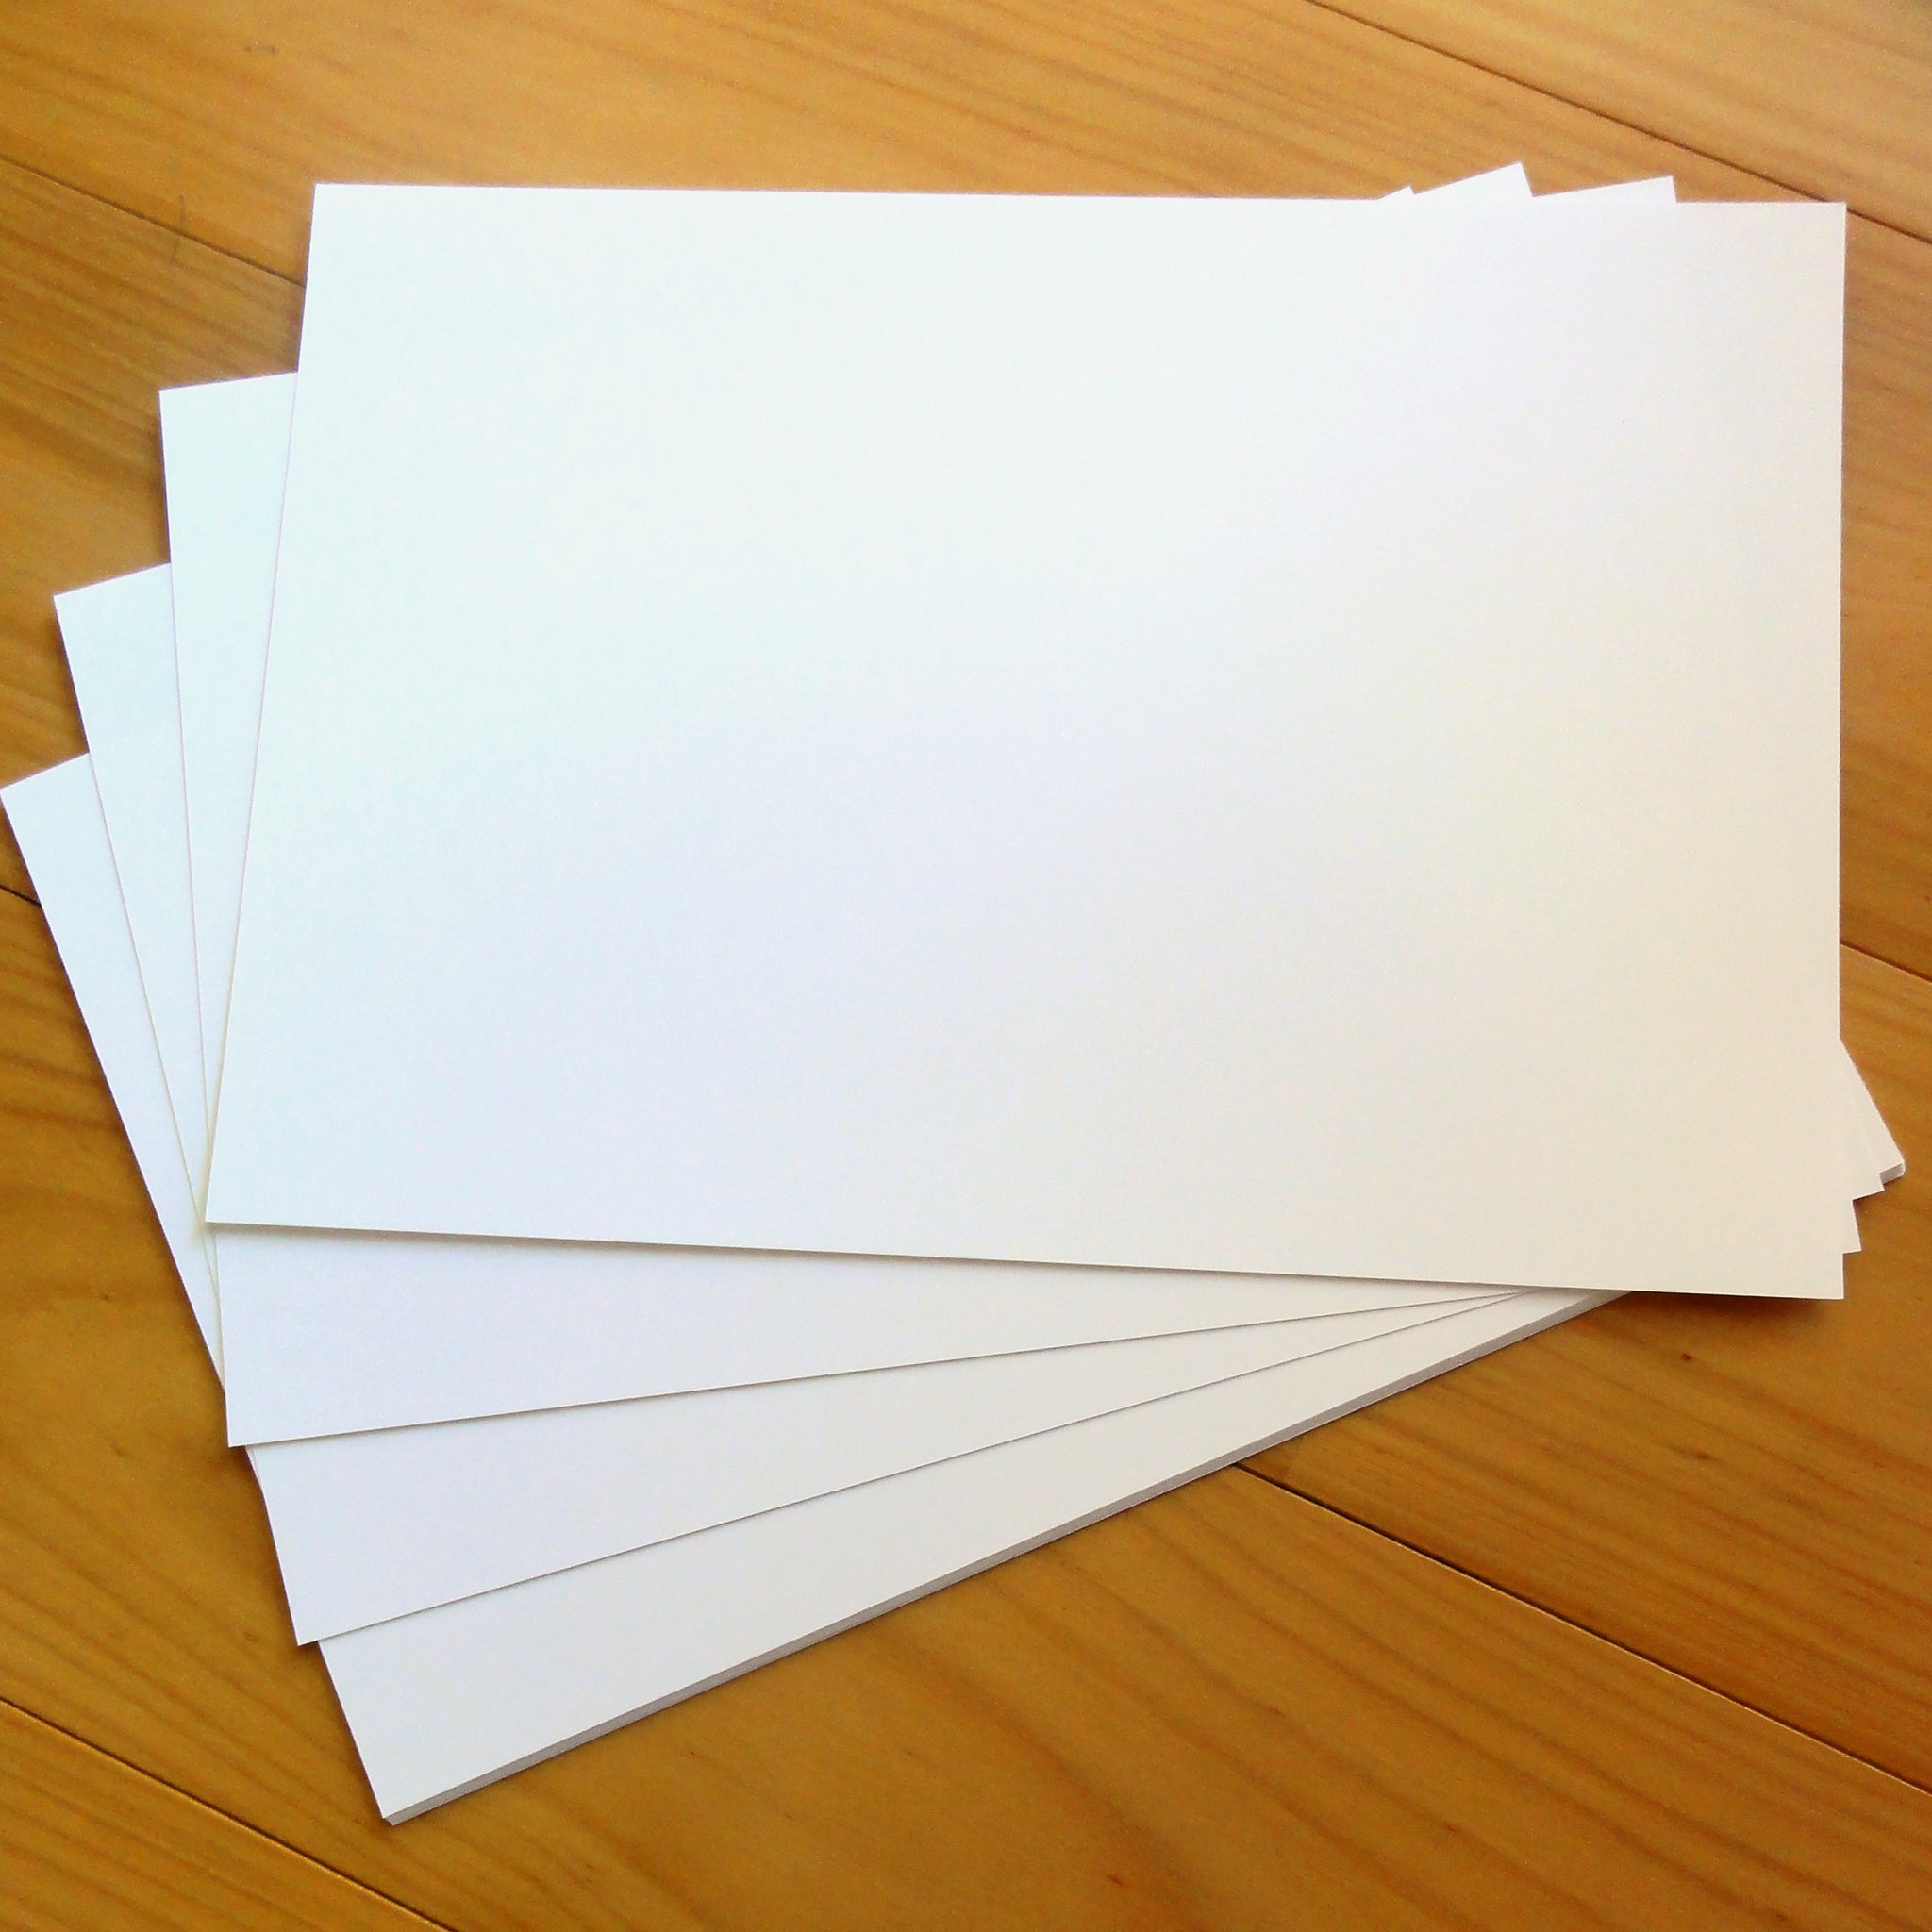 "CARD A4 ""LINEN WHITE"" 280 GSM 100 SHEETS BULK BUY"